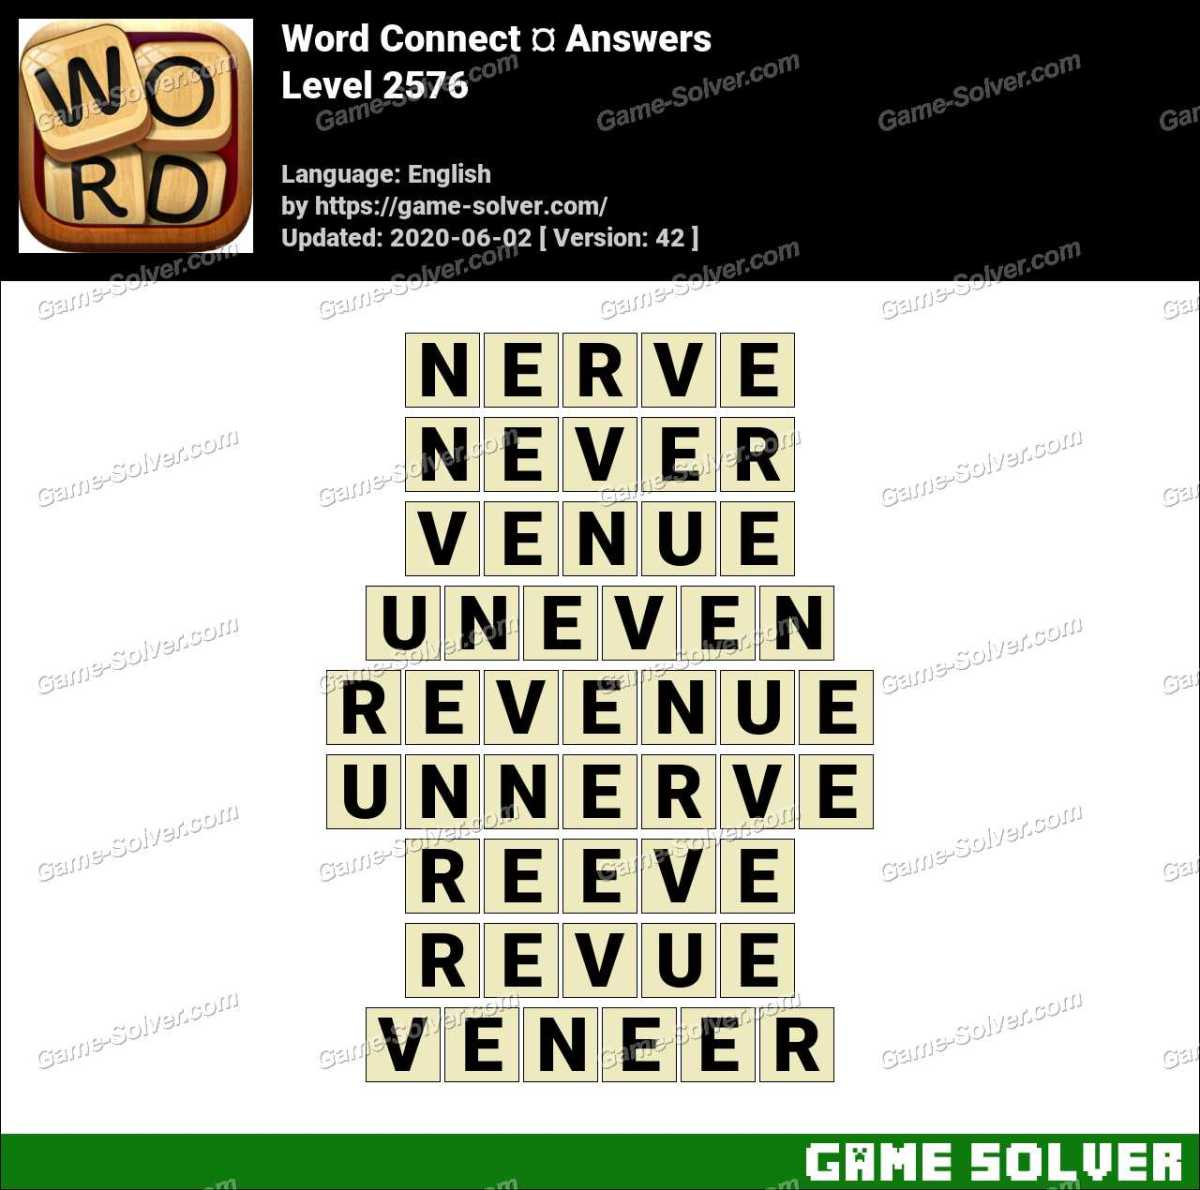 Word Connect Level 2576 Answers